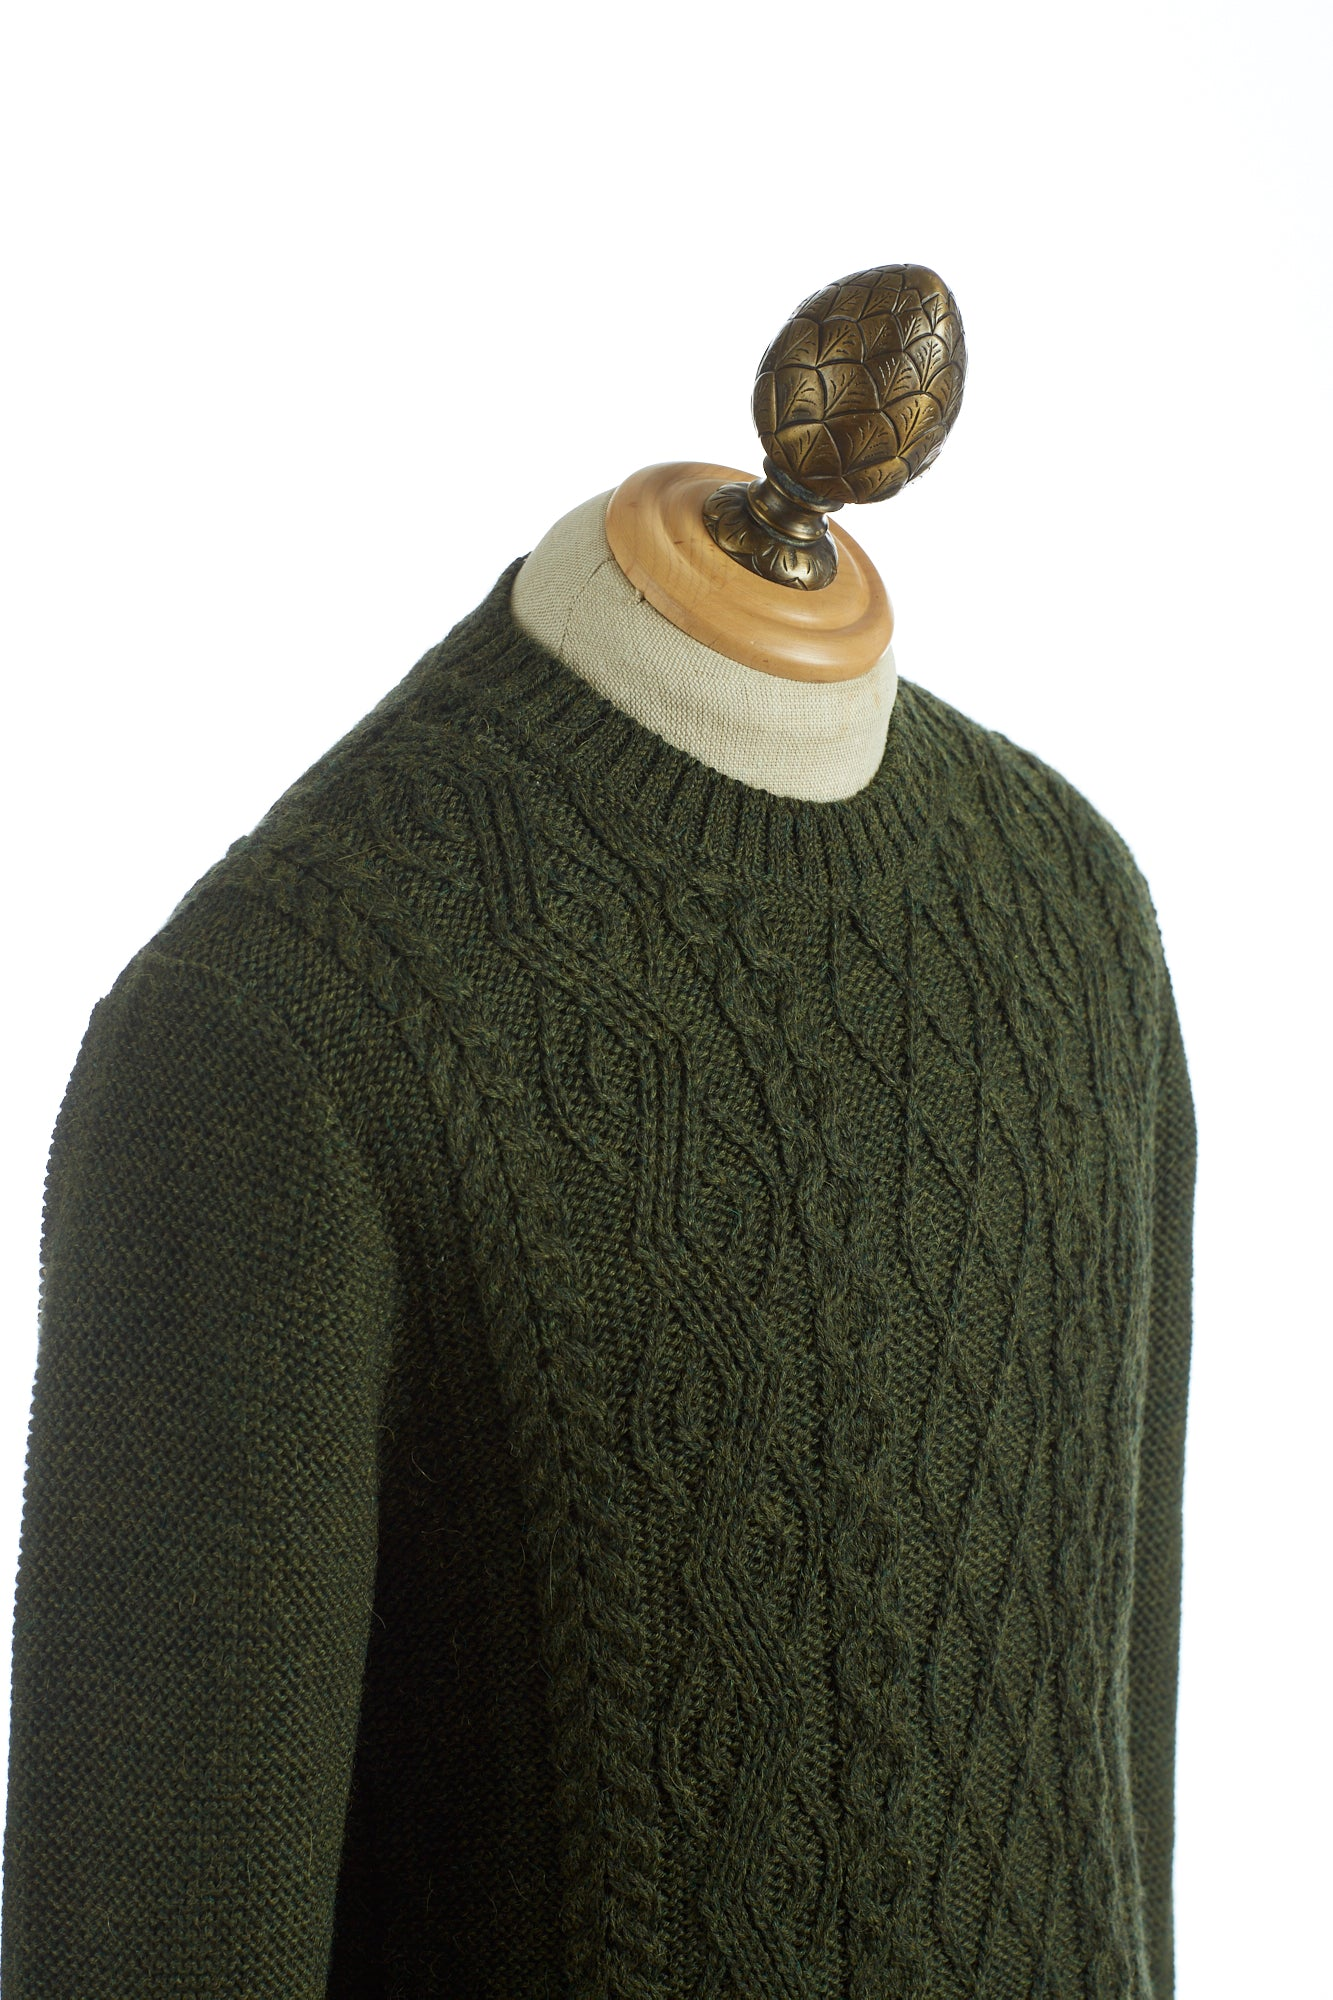 Inis Meáin Aran Green Cable Knit Crewneck Sweater - Sweaters - Inis Meáin - LALONDE's